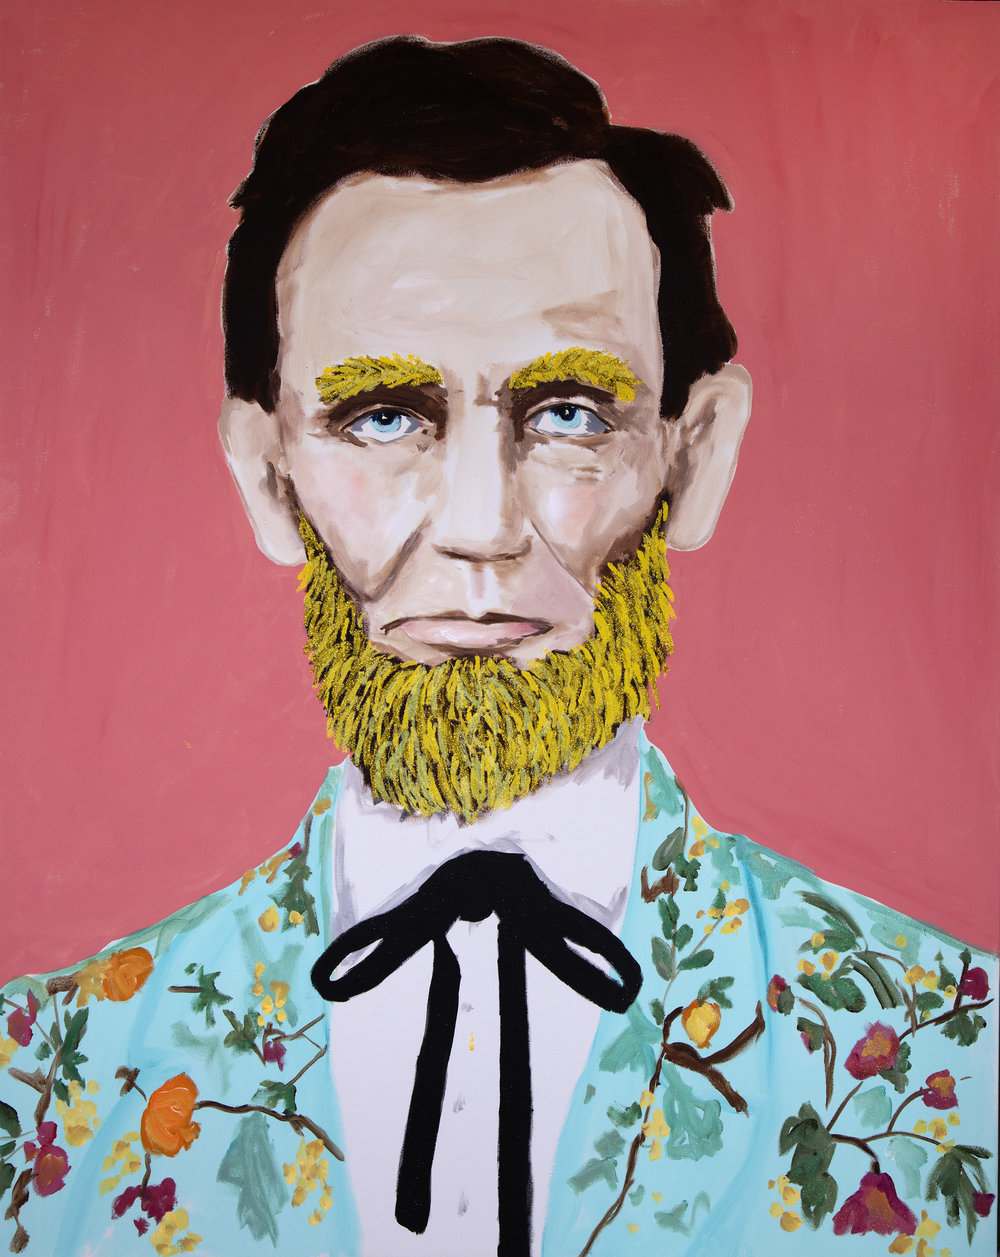 honest-abe-with-gold-beard-and-gucci-jacket-hr-1y1a2390